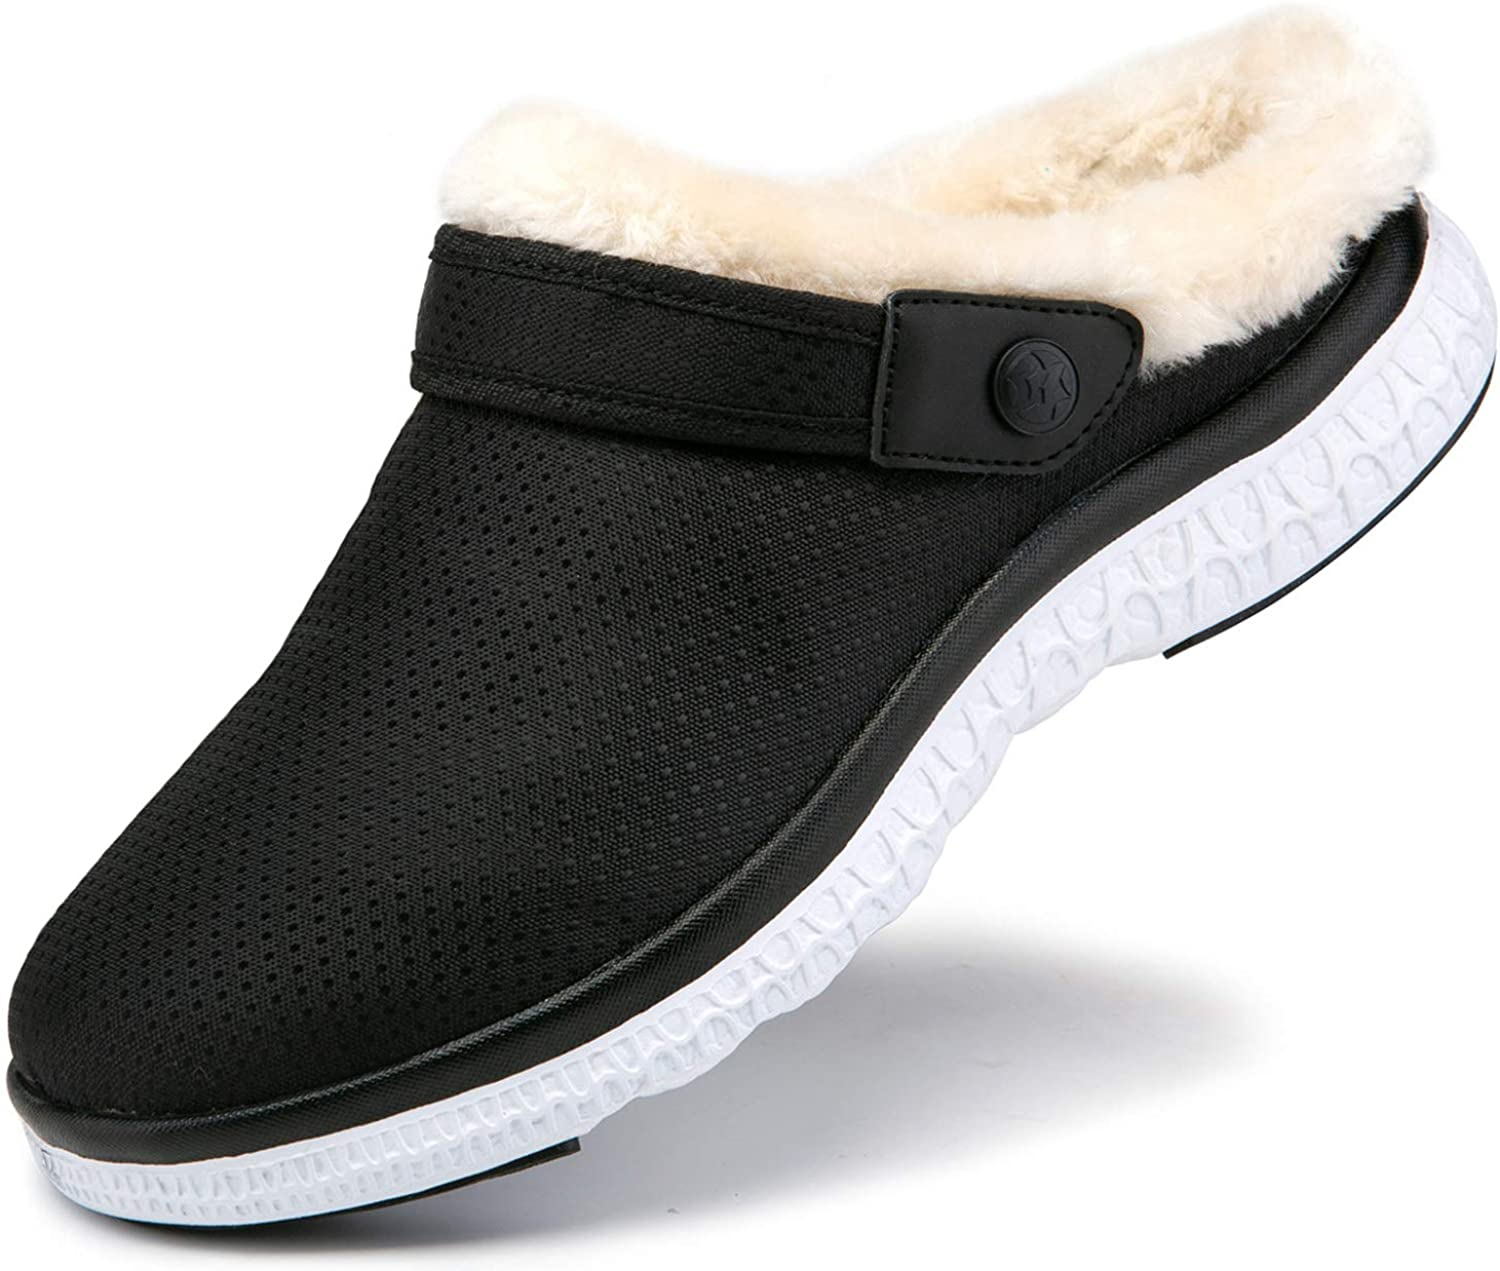 Womens Mens Lined Clogs Winter Slippers Home House Shoes Warm Plush Fleece Lining Garden Shoes Indoor Outdoor Mules